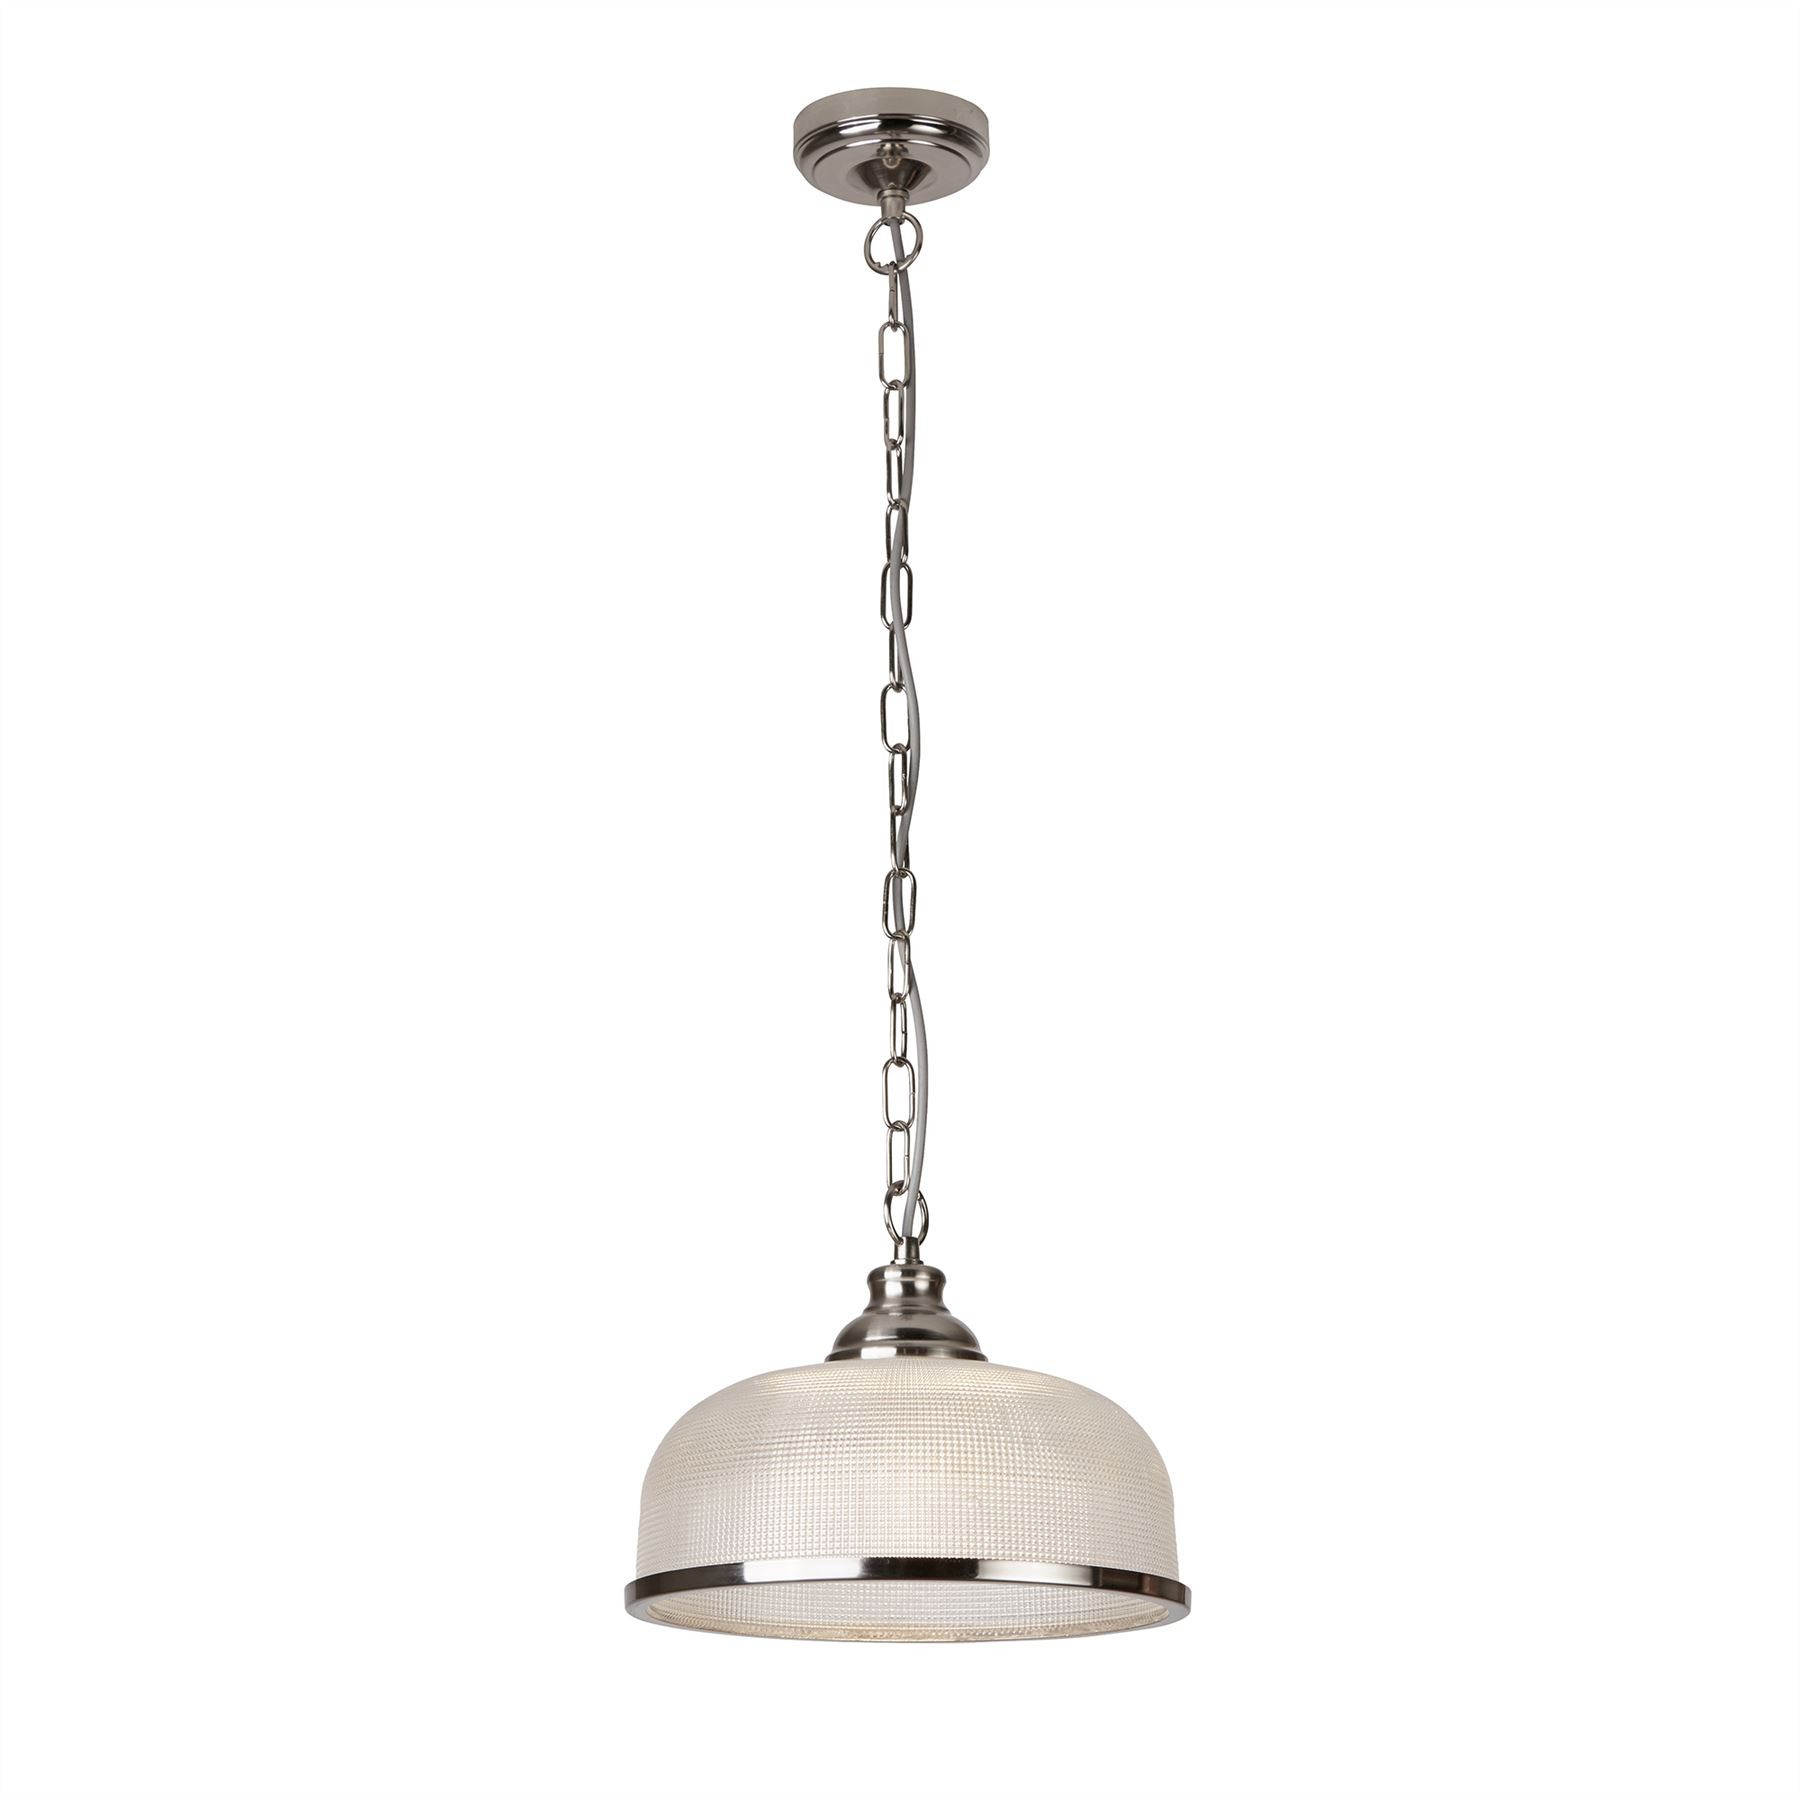 1 Light Ceiling Pendant Silver, White, Glass Single within 1-Light Single Dome Pendants (Image 1 of 30)